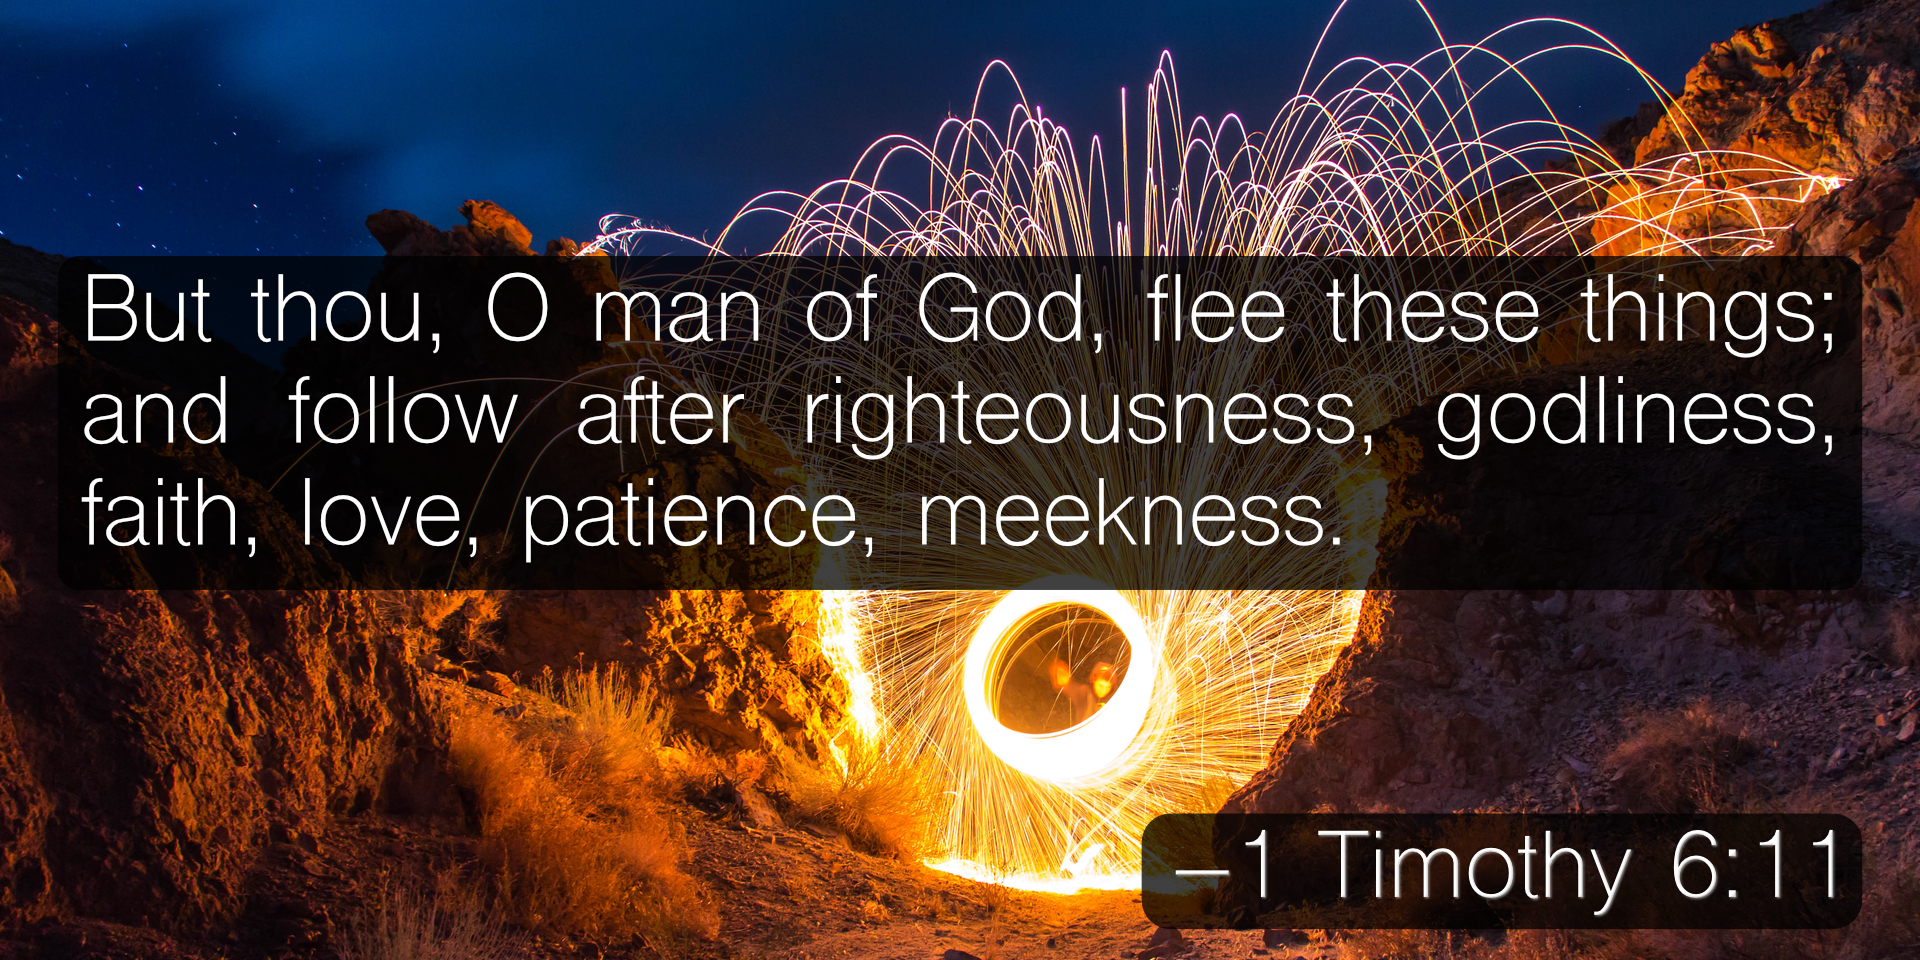 But thou, O man of God, flee these things; and follow after righteousness, godliness, faith, love, patience, meekness. –  1 Timothy 6:11